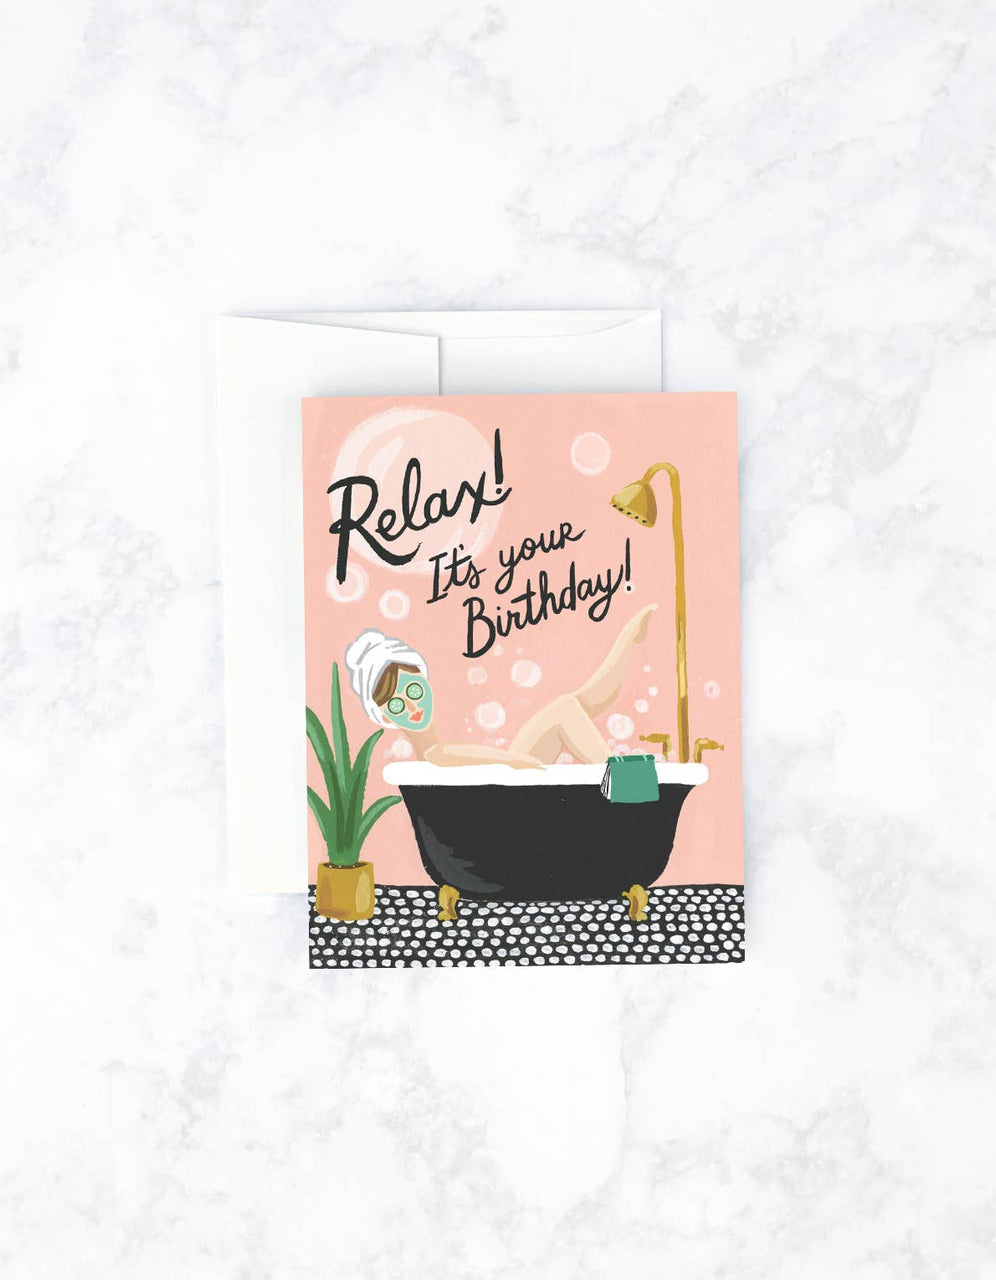 Idlewild - Bubble Bath Card